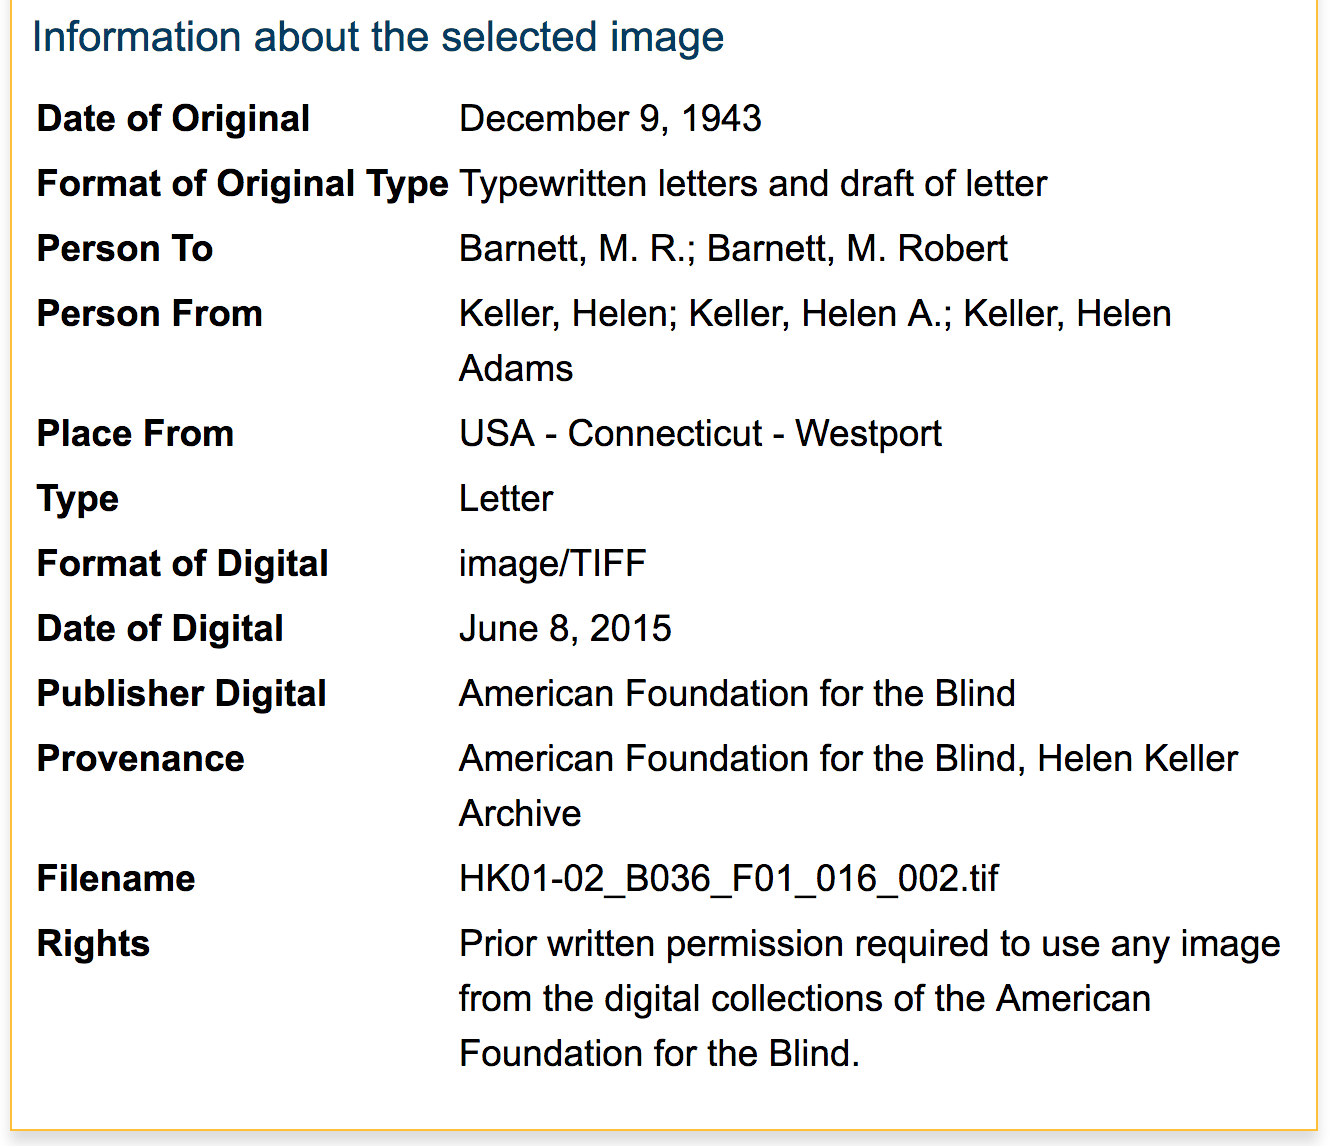 Helen Keller Archive: Information about the selected image, a section in the metadata work record description.